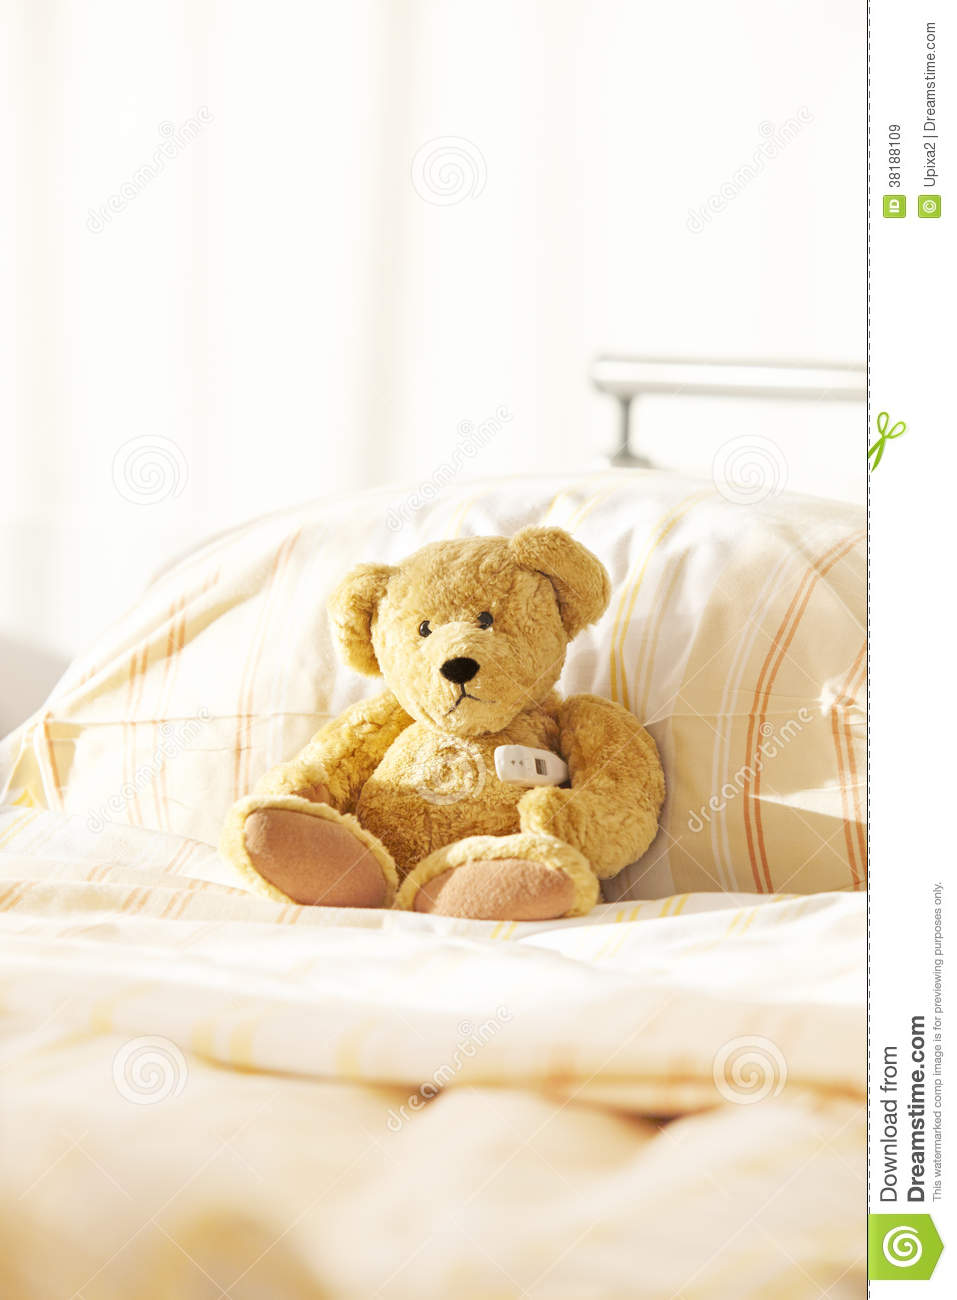 Bear Teddy Hospital Bed Royalty Free Stock Images   Image  38188109